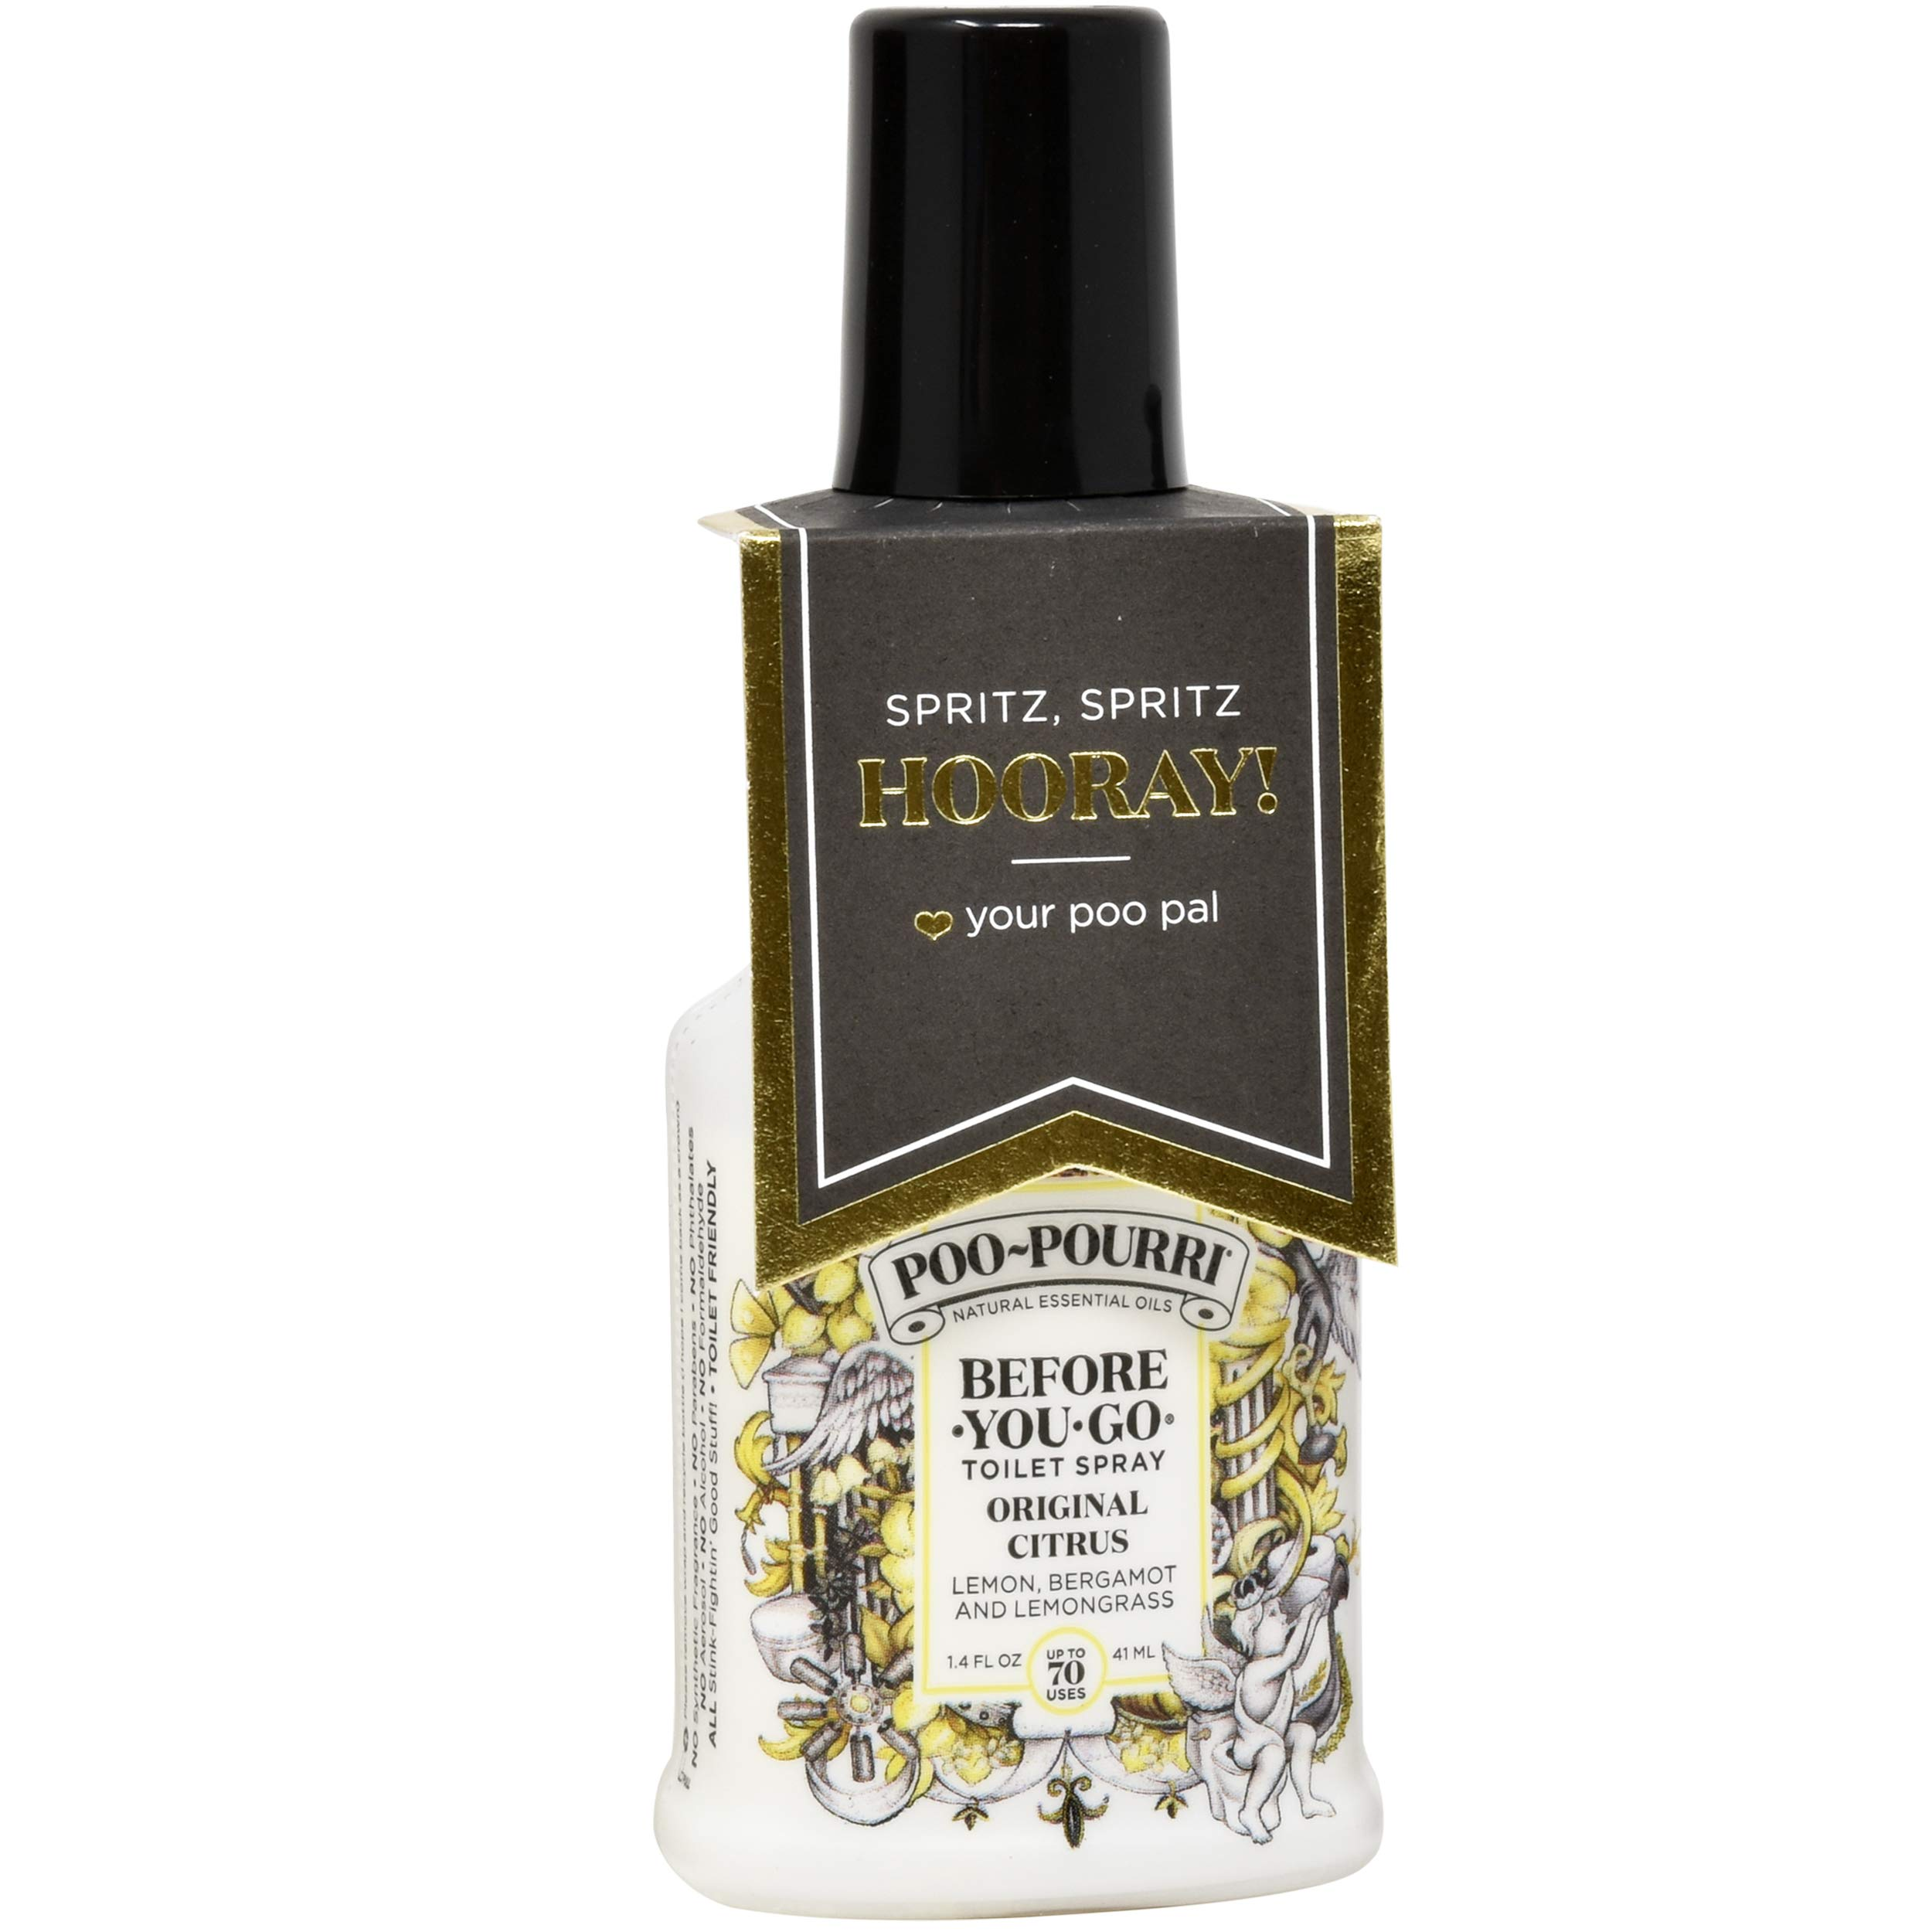 Poo-Pourri in A Pinch Pack Toilet Spray Gift Set, 5 Pack 10 mL, 1.4 Ounce Original Bottle and Bottle Tag Included by Poo-Pourri (Image #3)